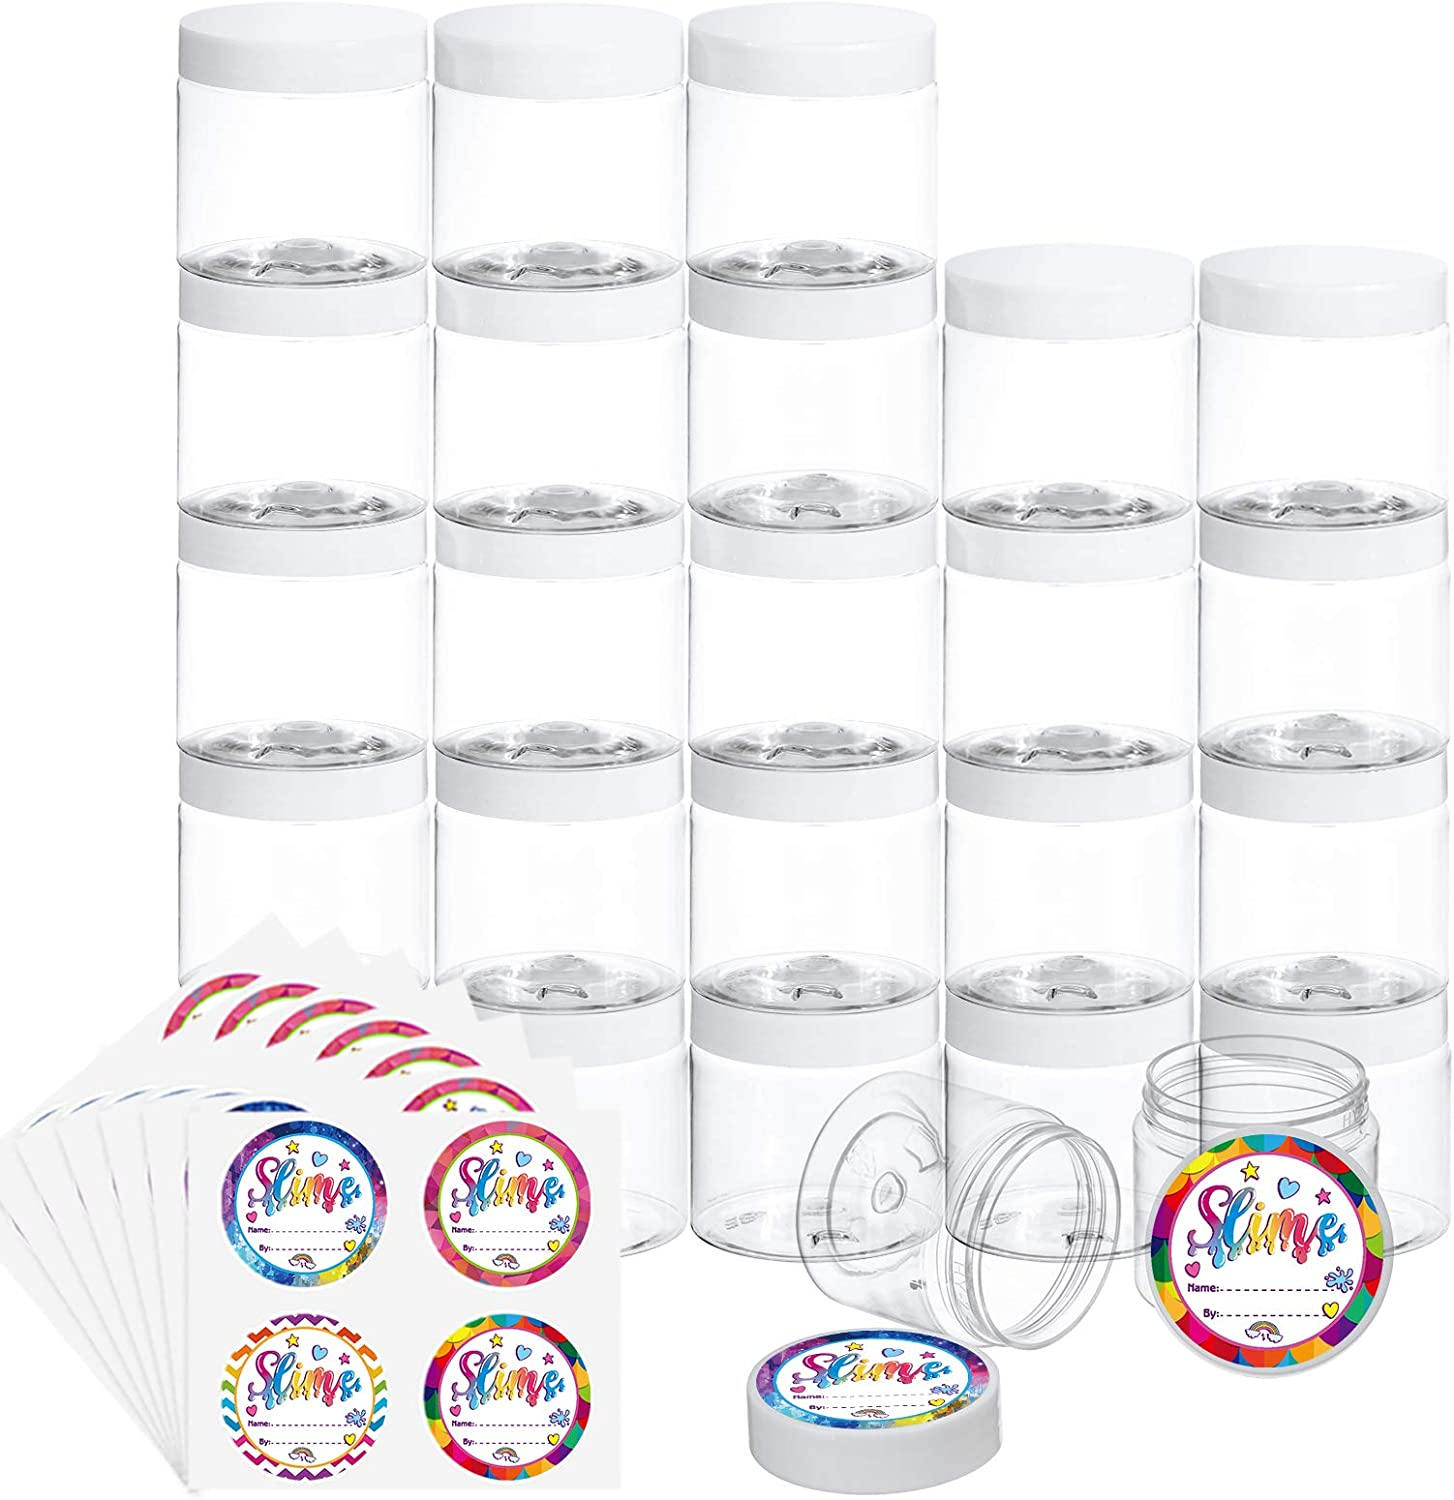 Habbi 25 Pack 2OZ Empty Slime Containers Slime Jars Plastic Containers with White Water-Tight Lids and Exquisite Stickers for DIY Slime Making, Beauty Products, Food or Others